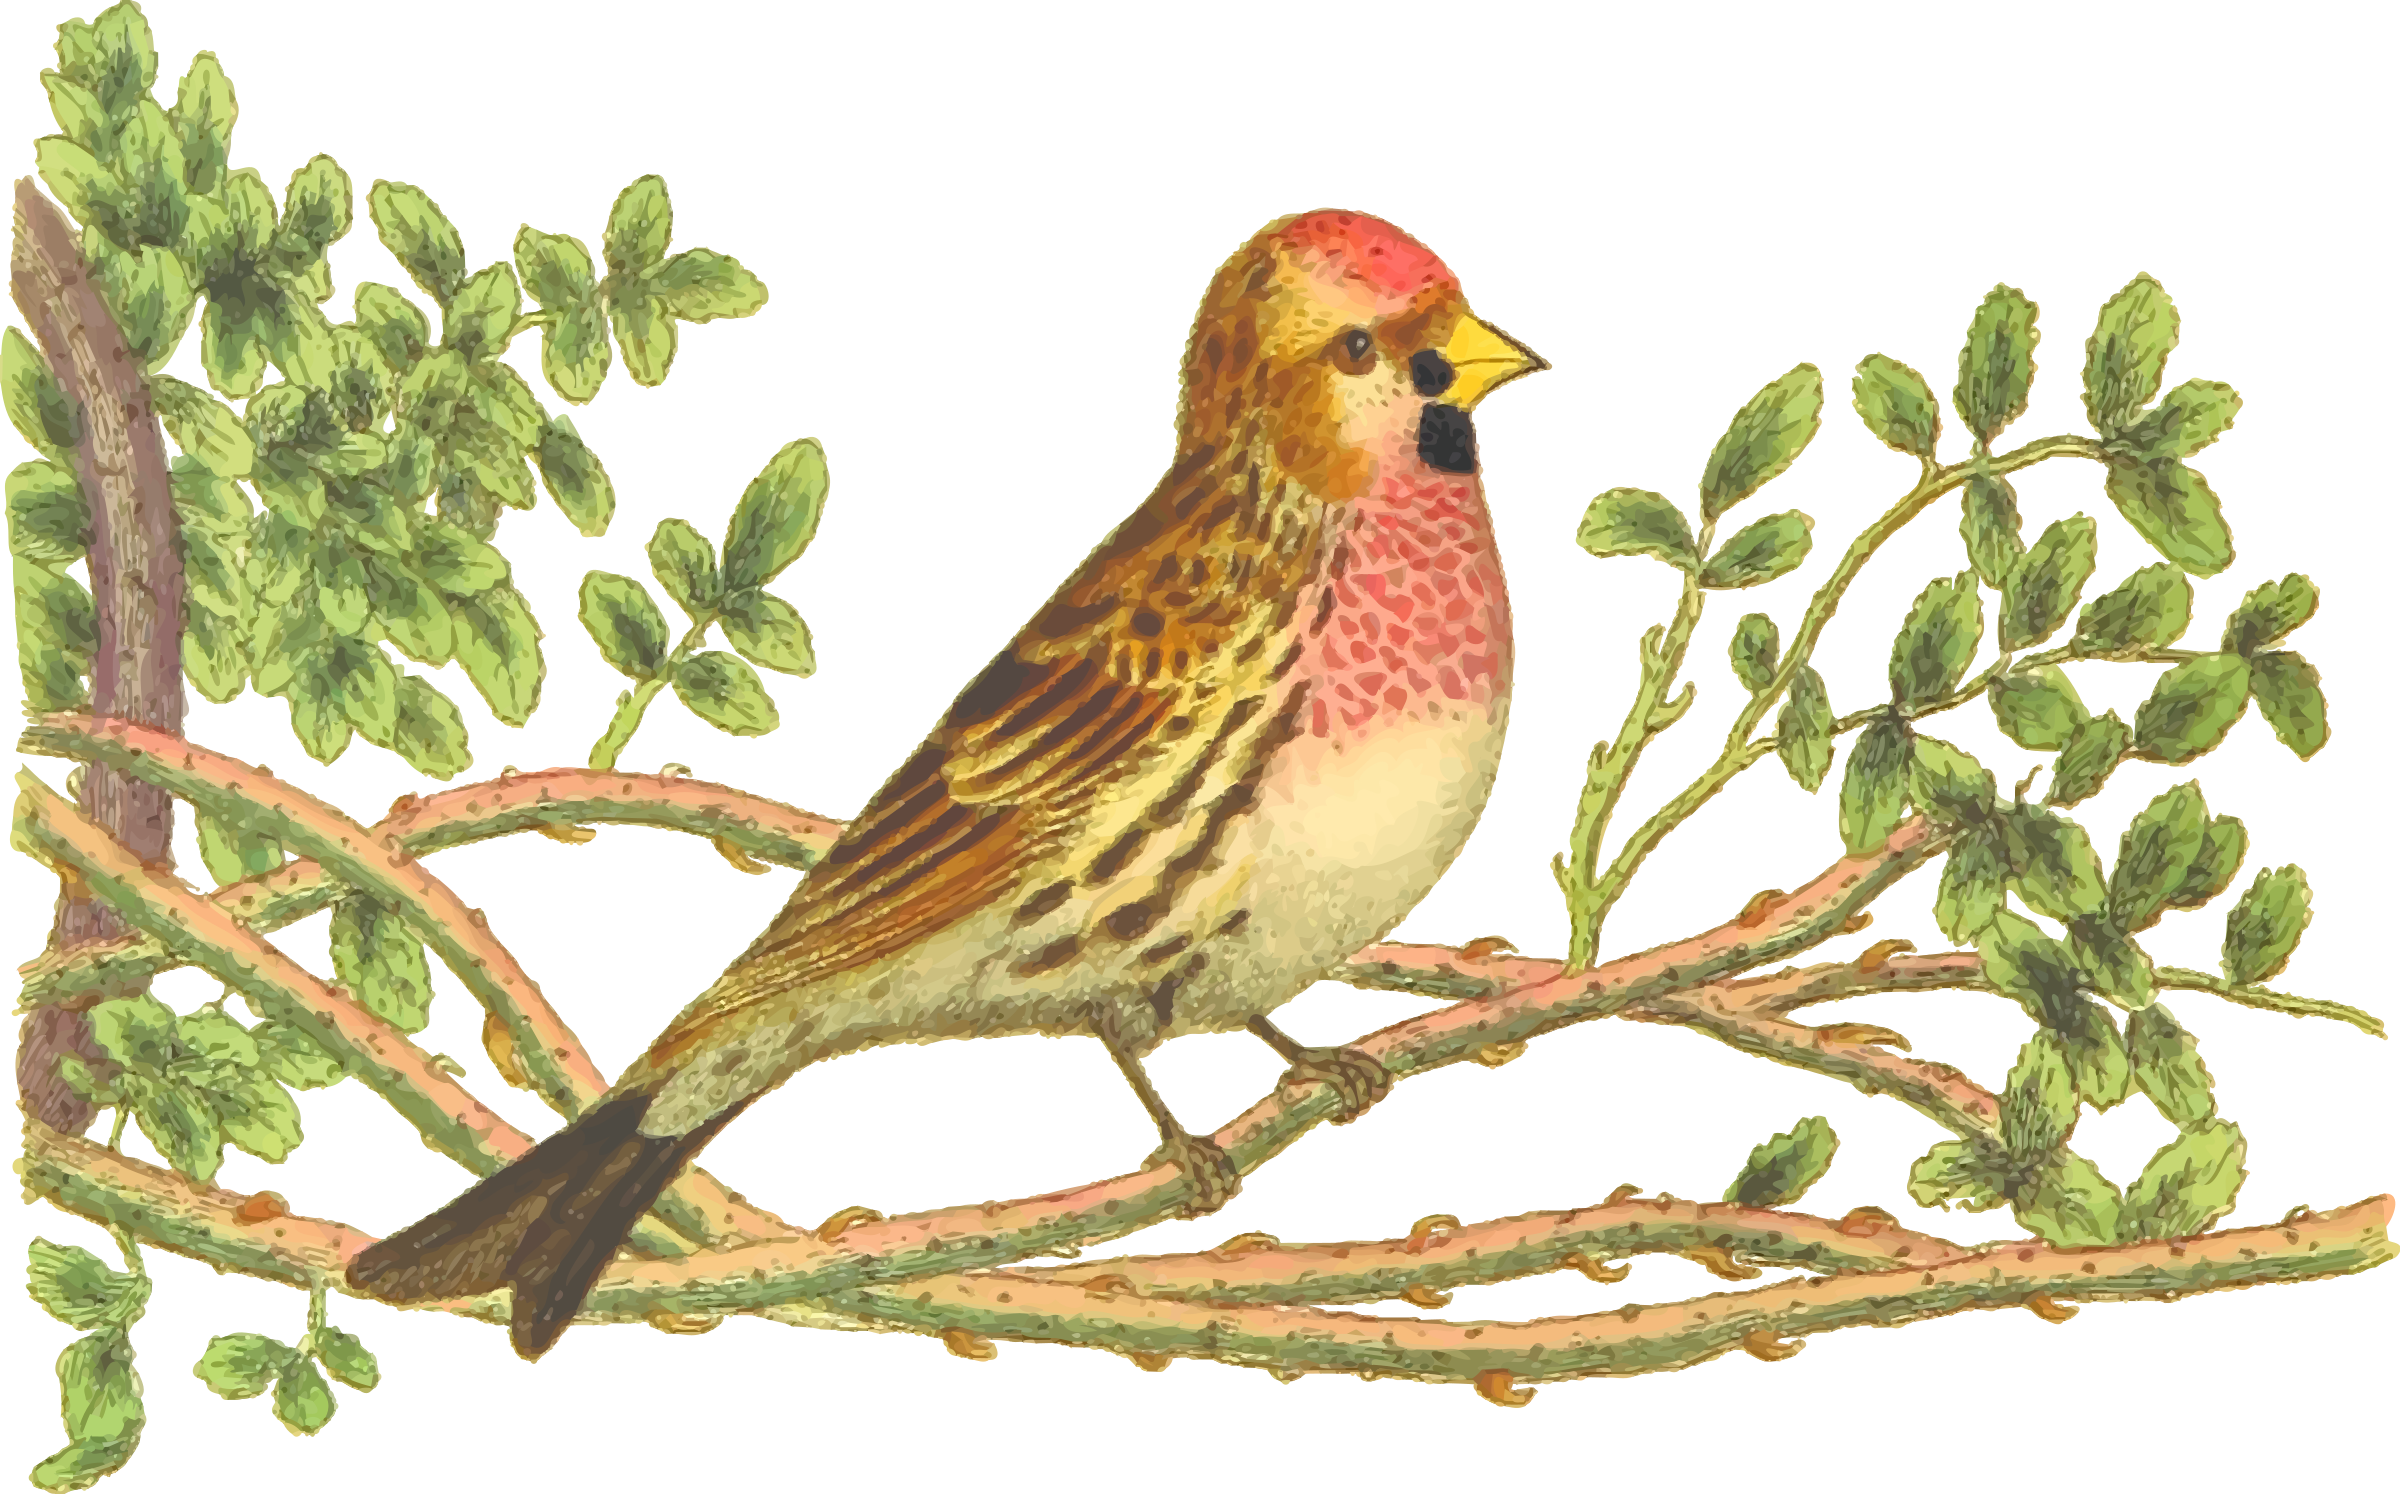 Nest clipart drawn bird. Ortolan bunting finch drawing